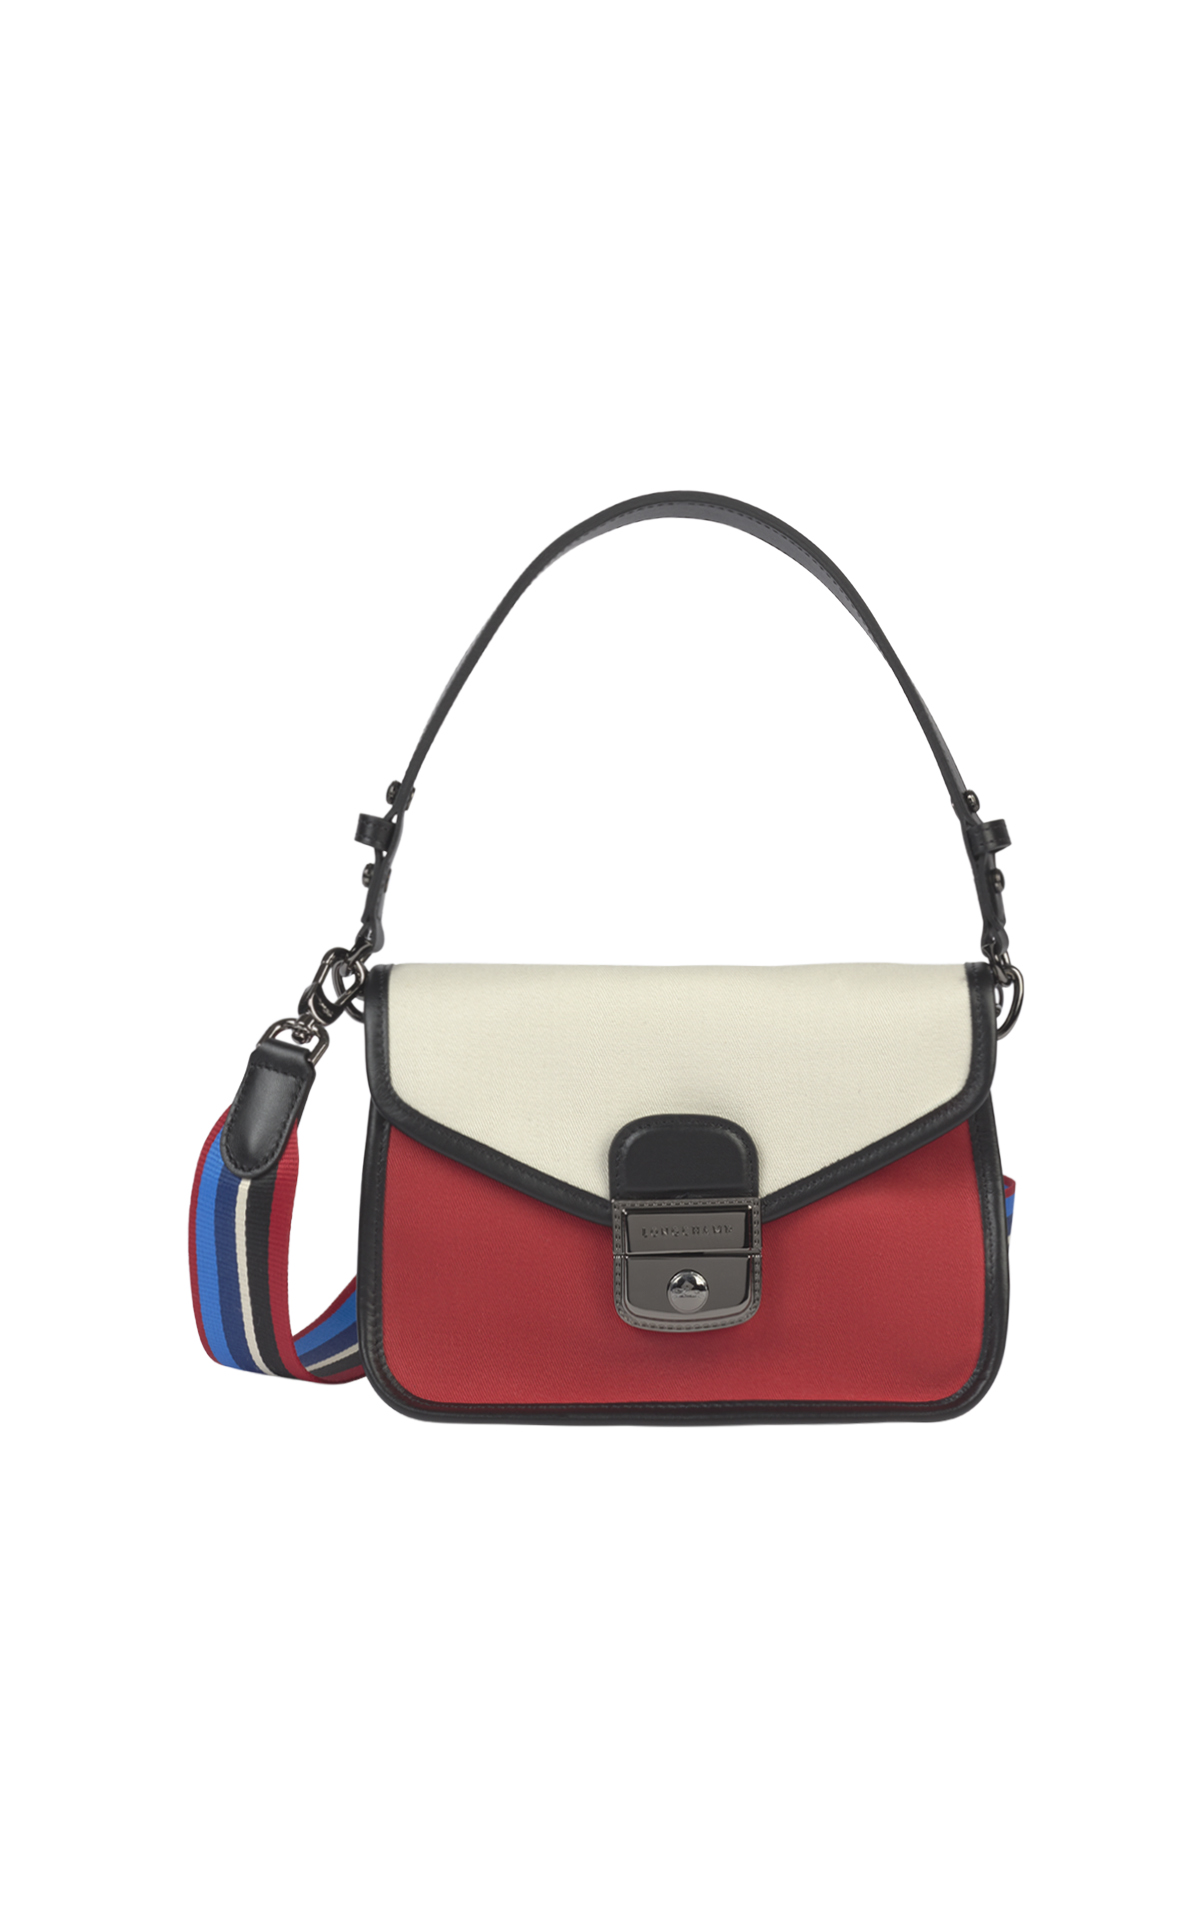 Black and red bag Longchamp